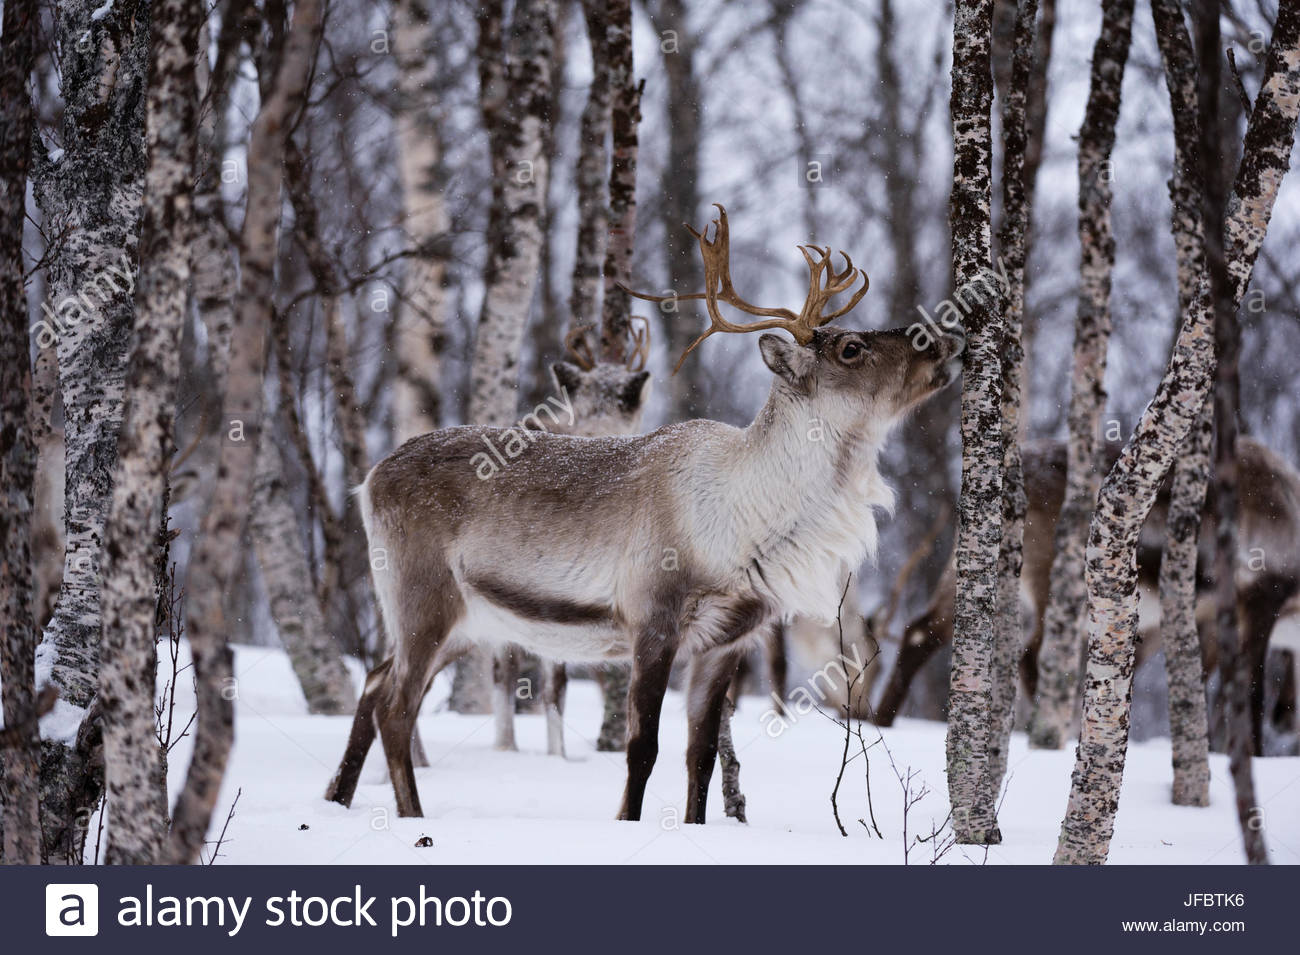 A reindeer, Rangifer tarandus, in a snowy forest. - Stock Image